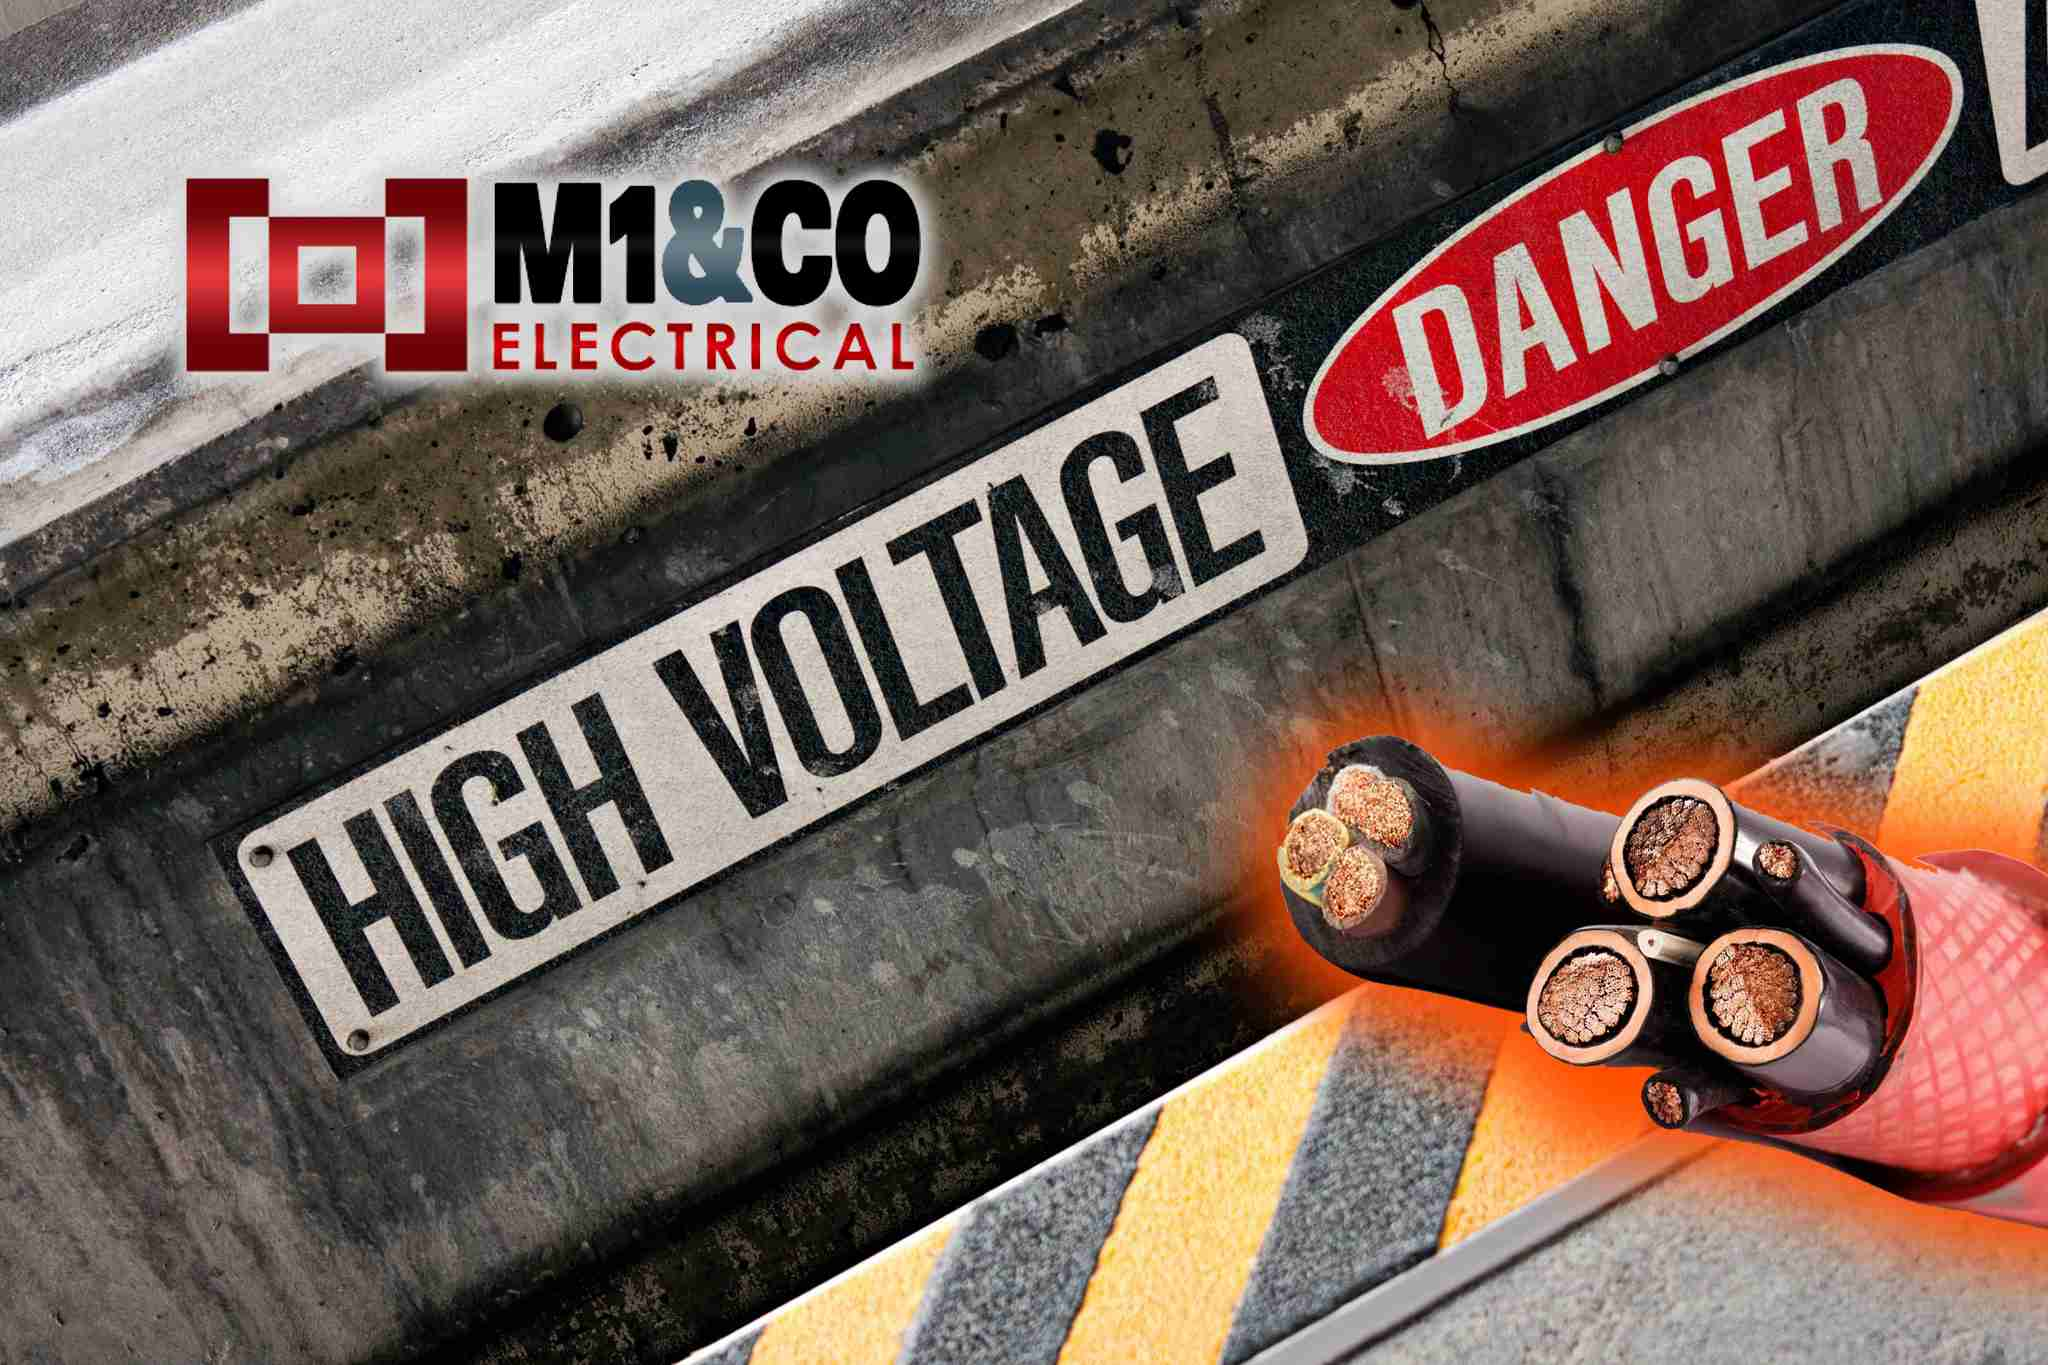 M1&CO - High voltage jointing & termination company in New South Wales